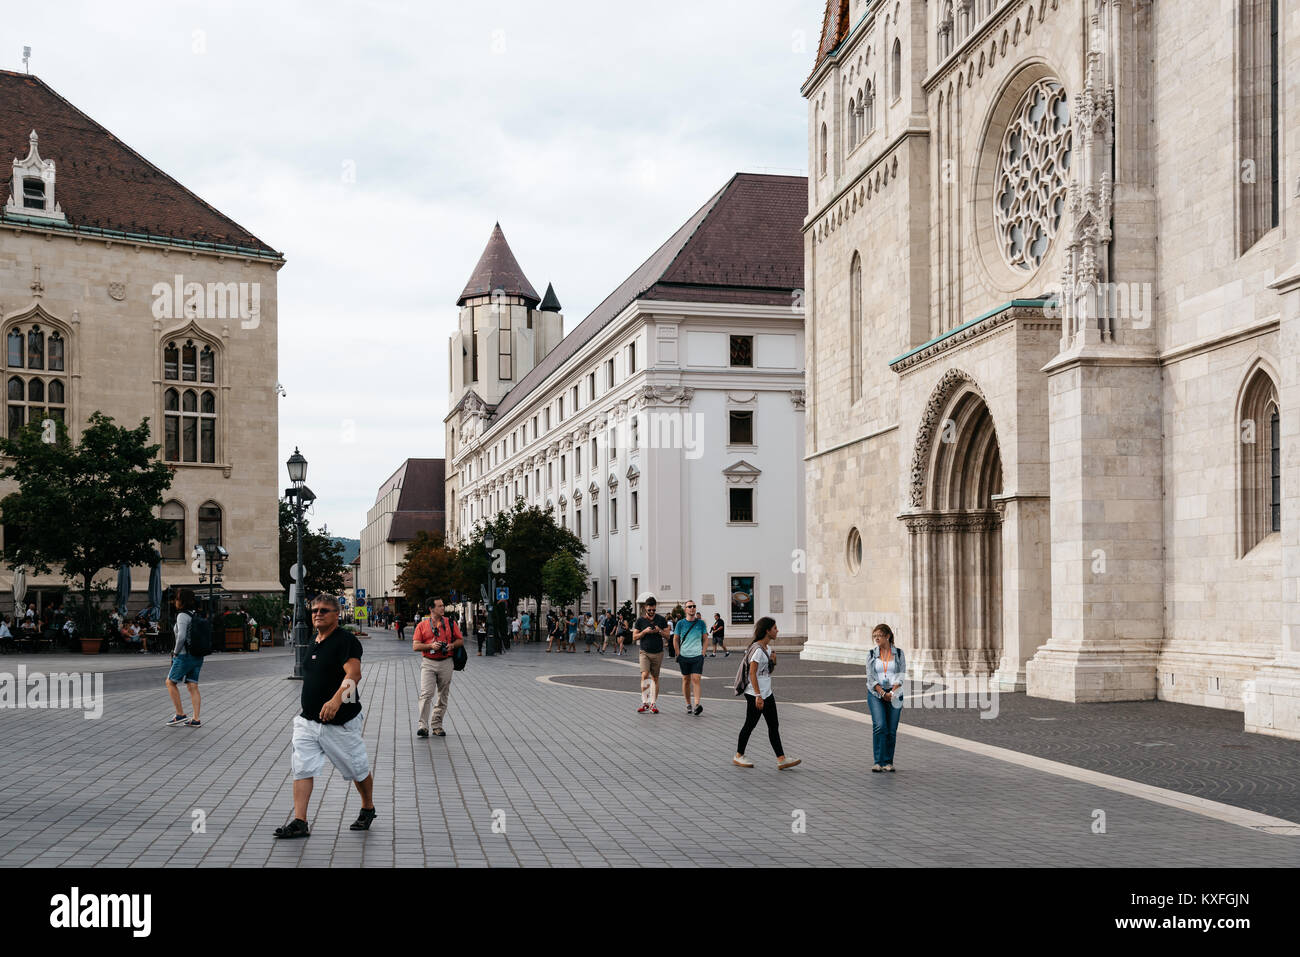 Budapest, Hungary - August 12, 2017:  Scenic view of street in the city of Buda near Mathias Church in Budapest - Stock Image